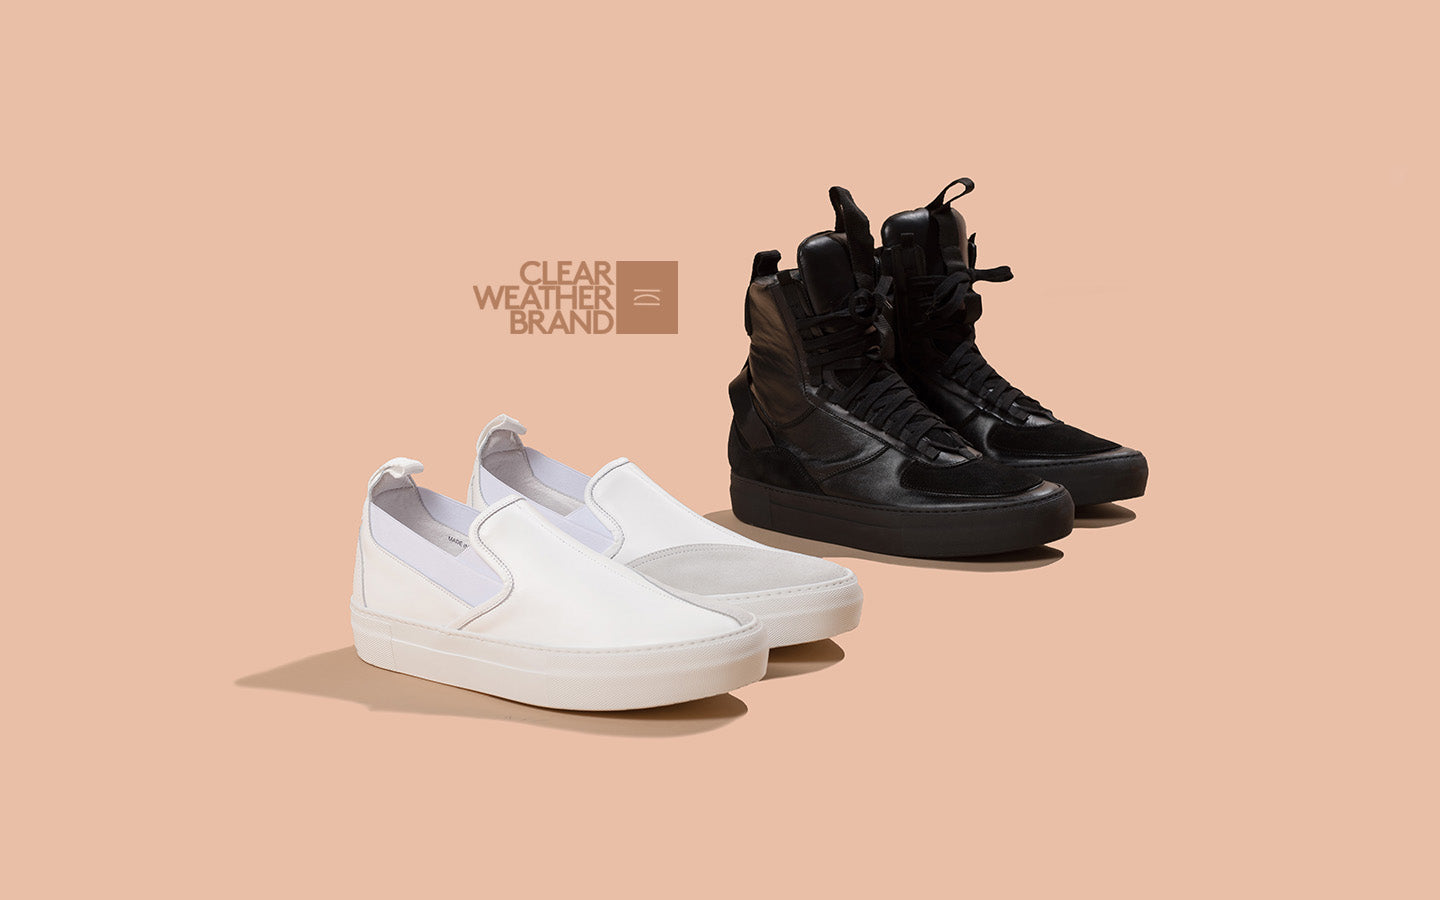 clearweather italian sneakers beltempo collection black hi-tops white slip-ons thedrop